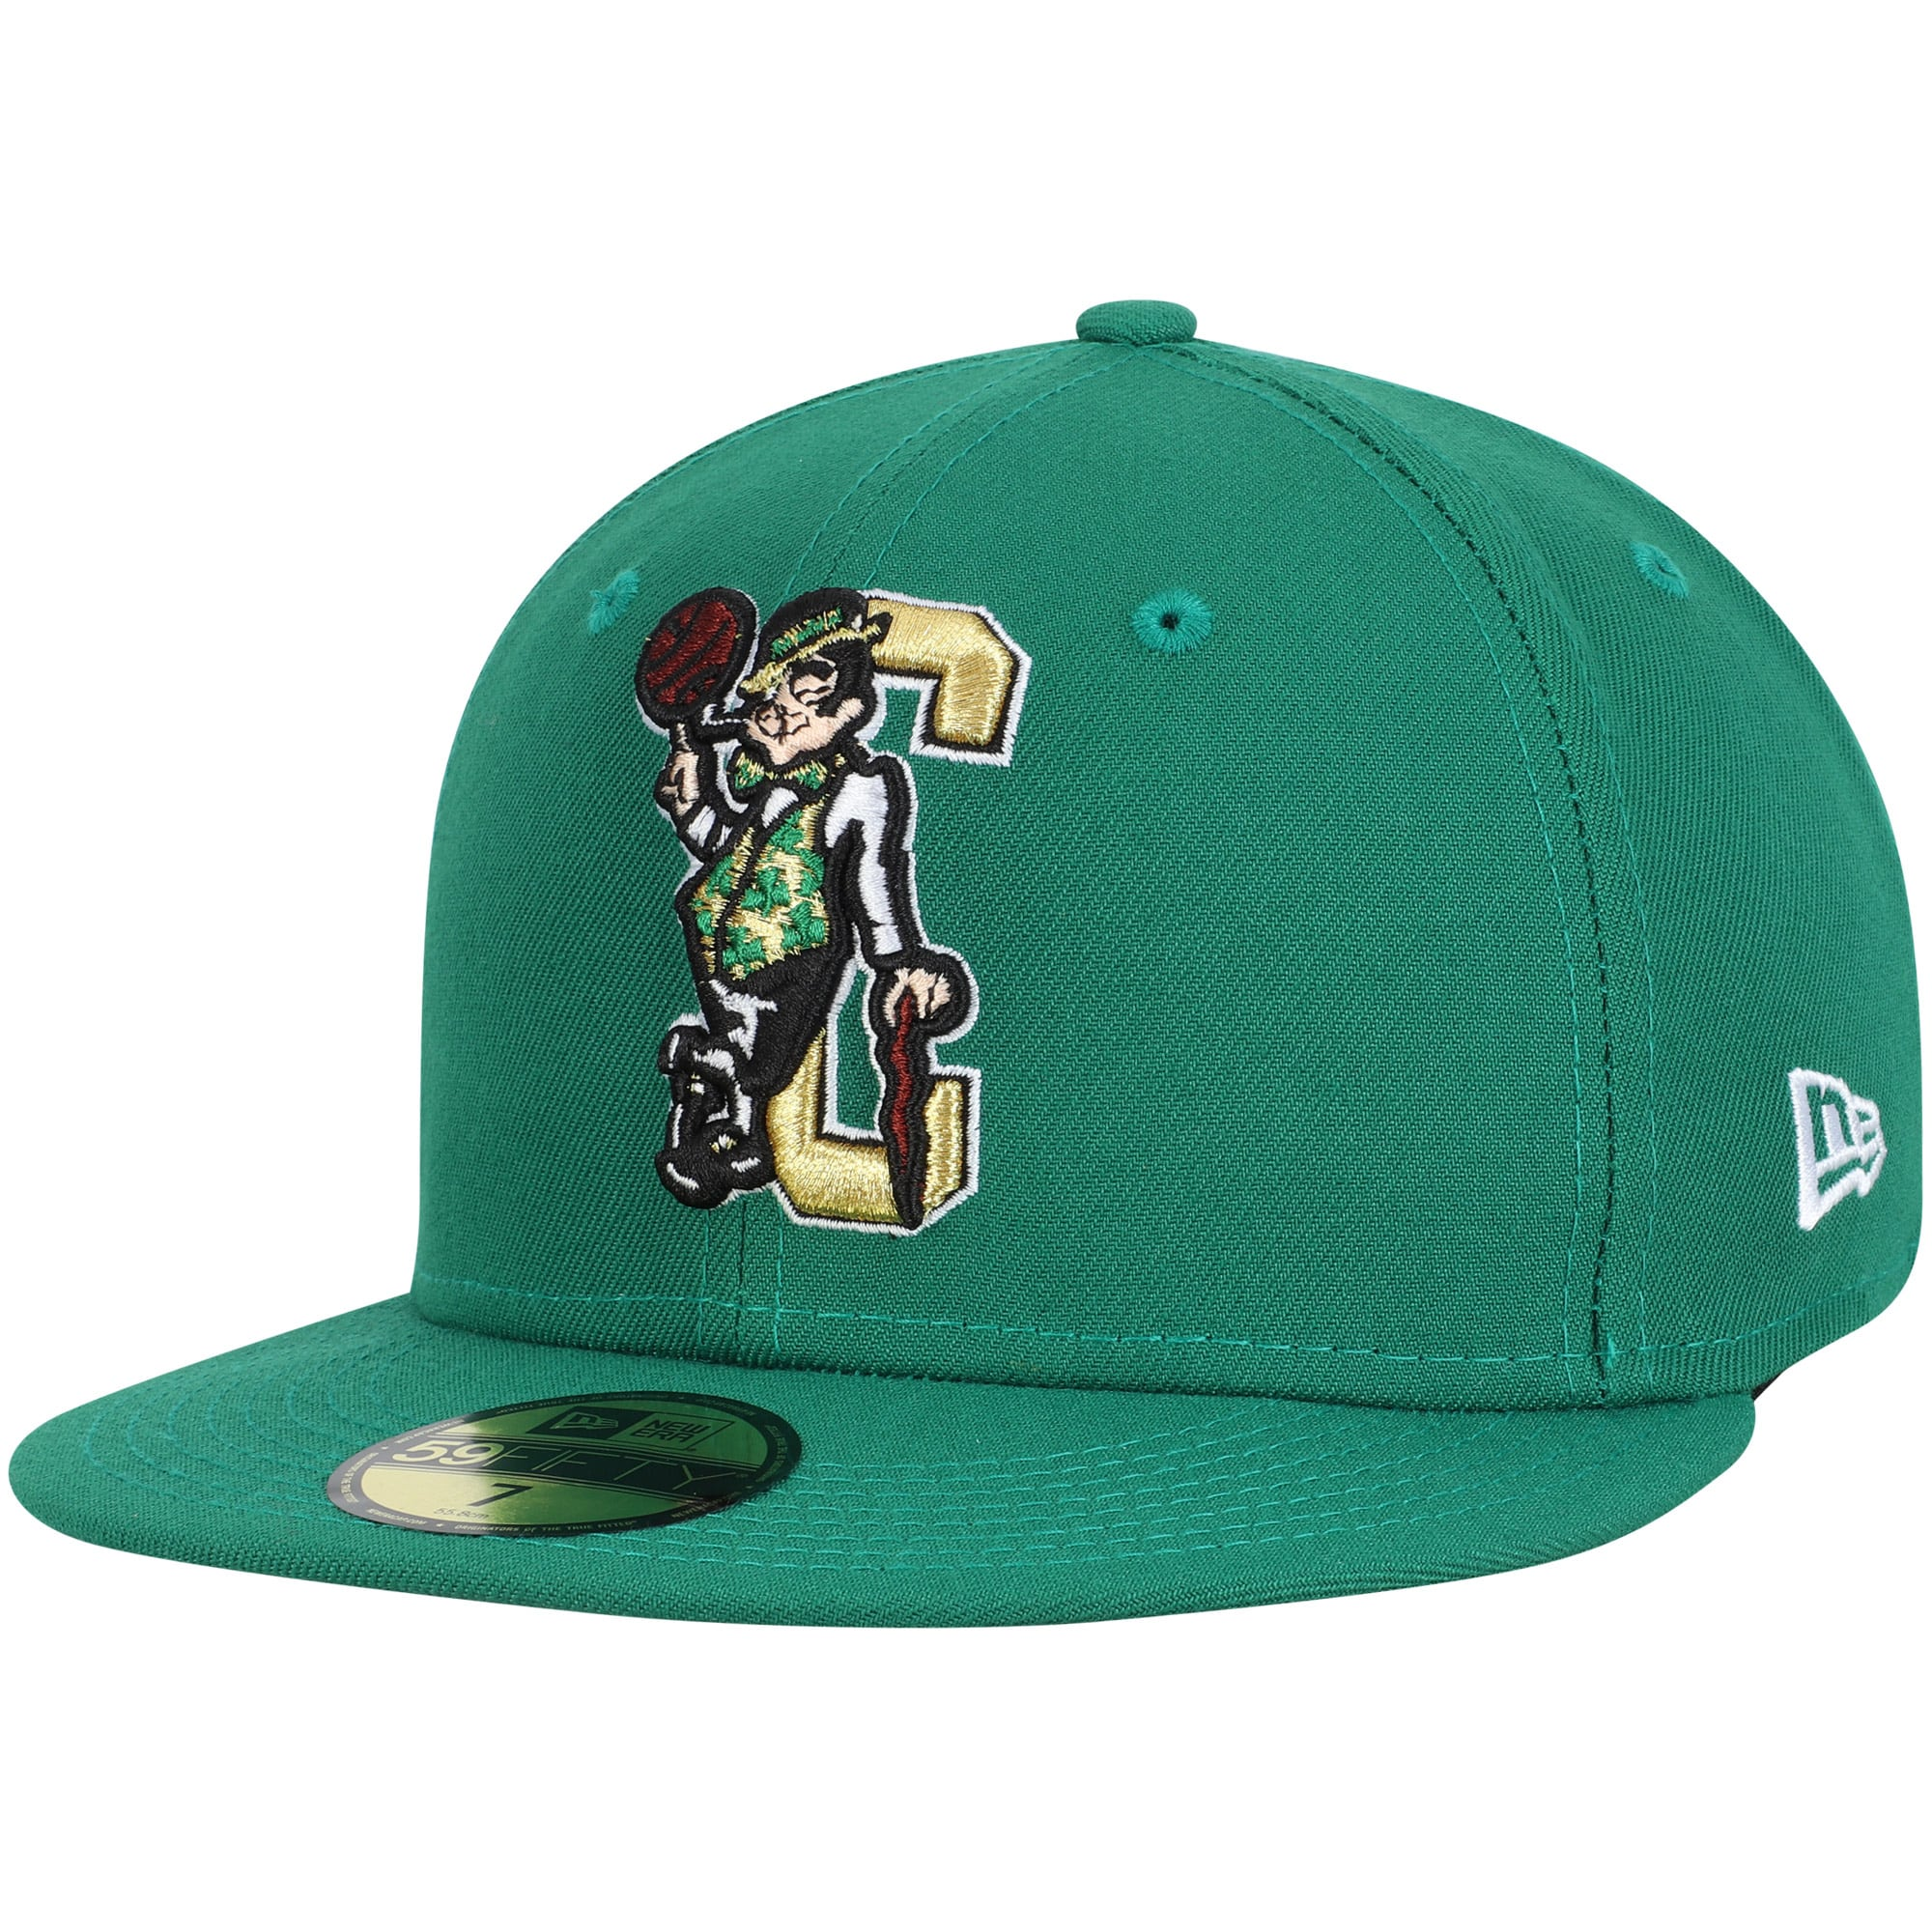 Boston Celtics New Era Team Logo Back Half Series 59FIFTY Fitted Hat - Kelly Green